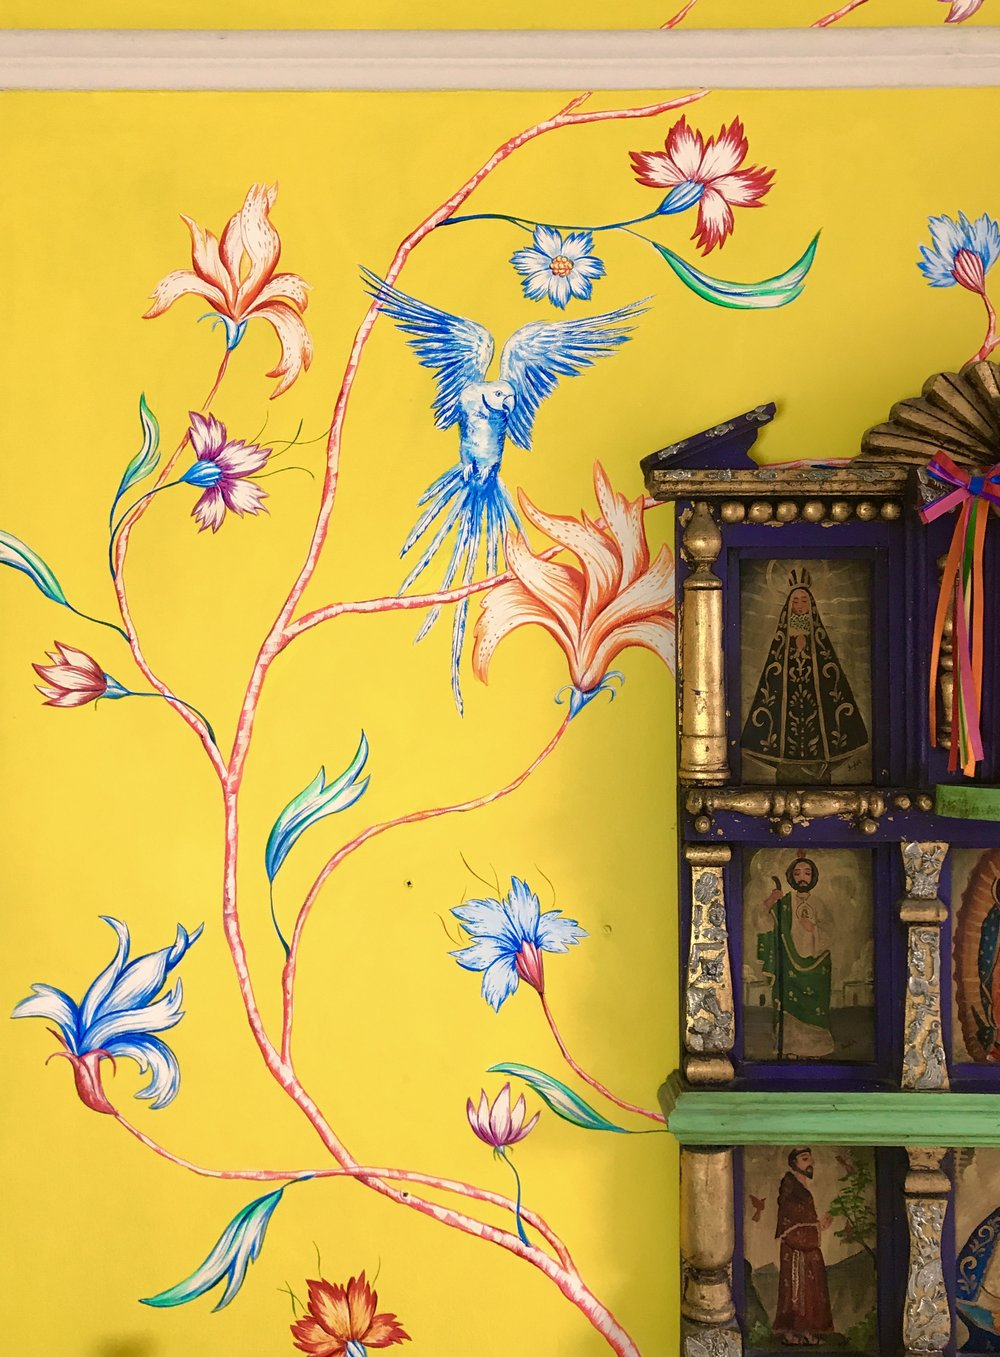 Frederick Wimsett - murals and artistic design  WALLS MUMBAI YELLOW CHINOISERIE DETAIL 1.jpg